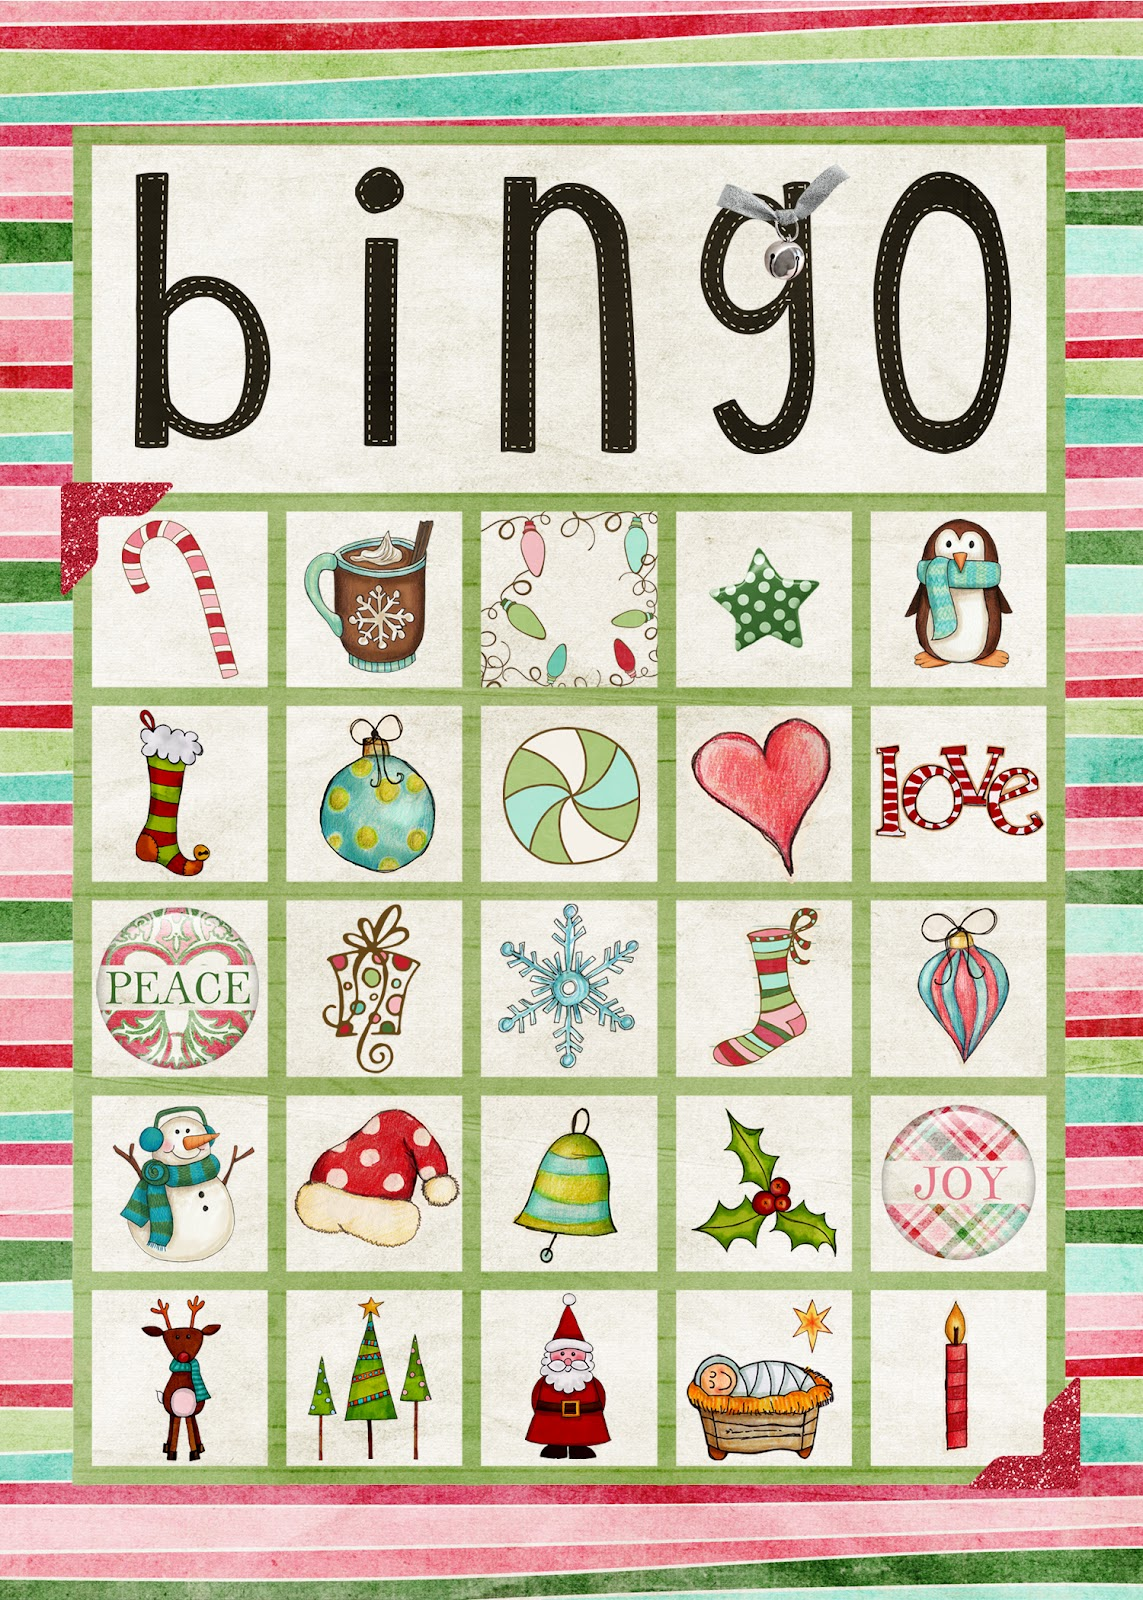 Sly image intended for holiday bingo printable